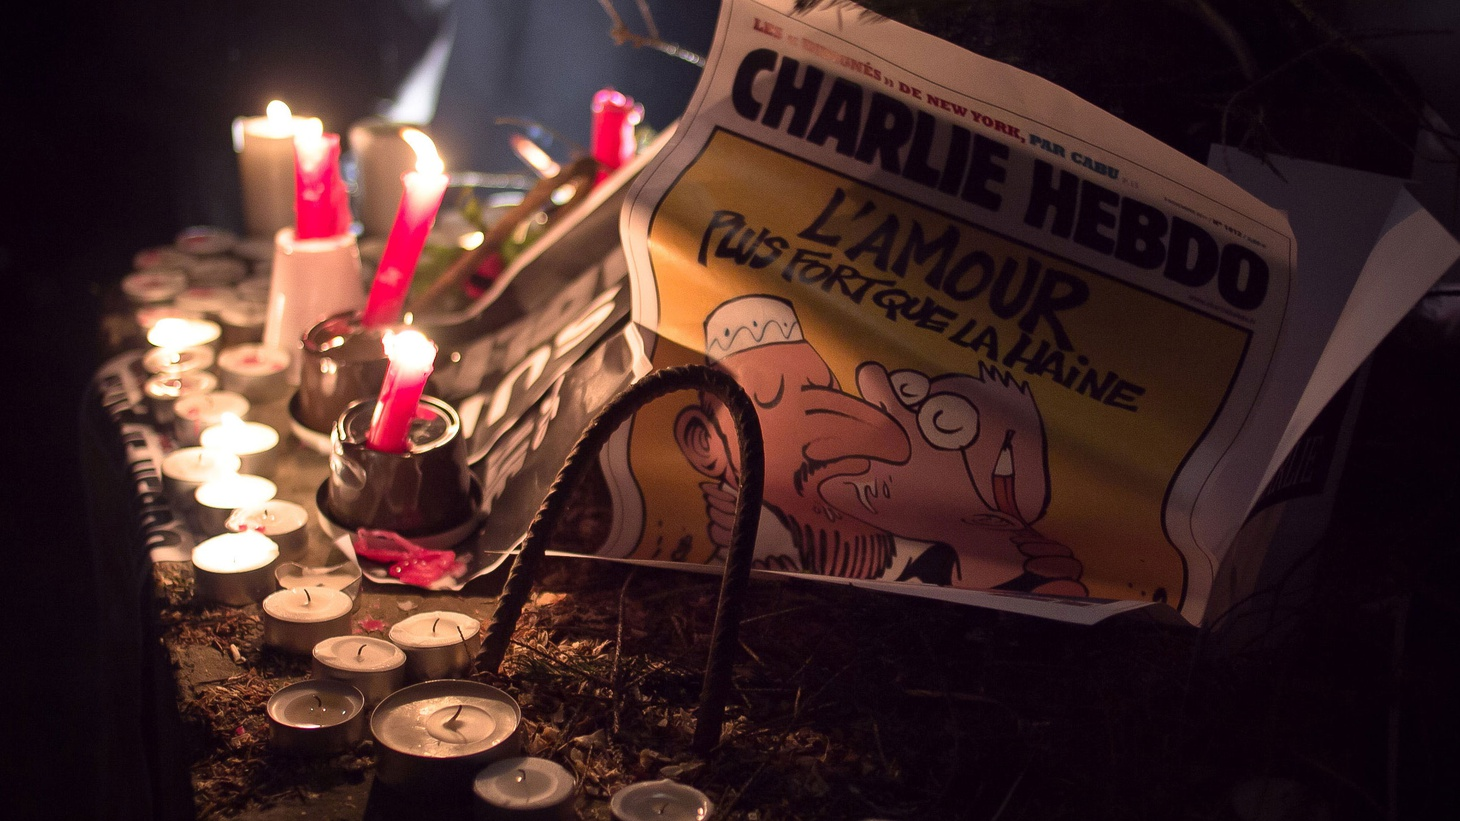 As the manhunt for suspected killers continues, France is assessing the consequences of yesterday's slaughter of satirical writers and cartoonists at Charlie Hebdo.